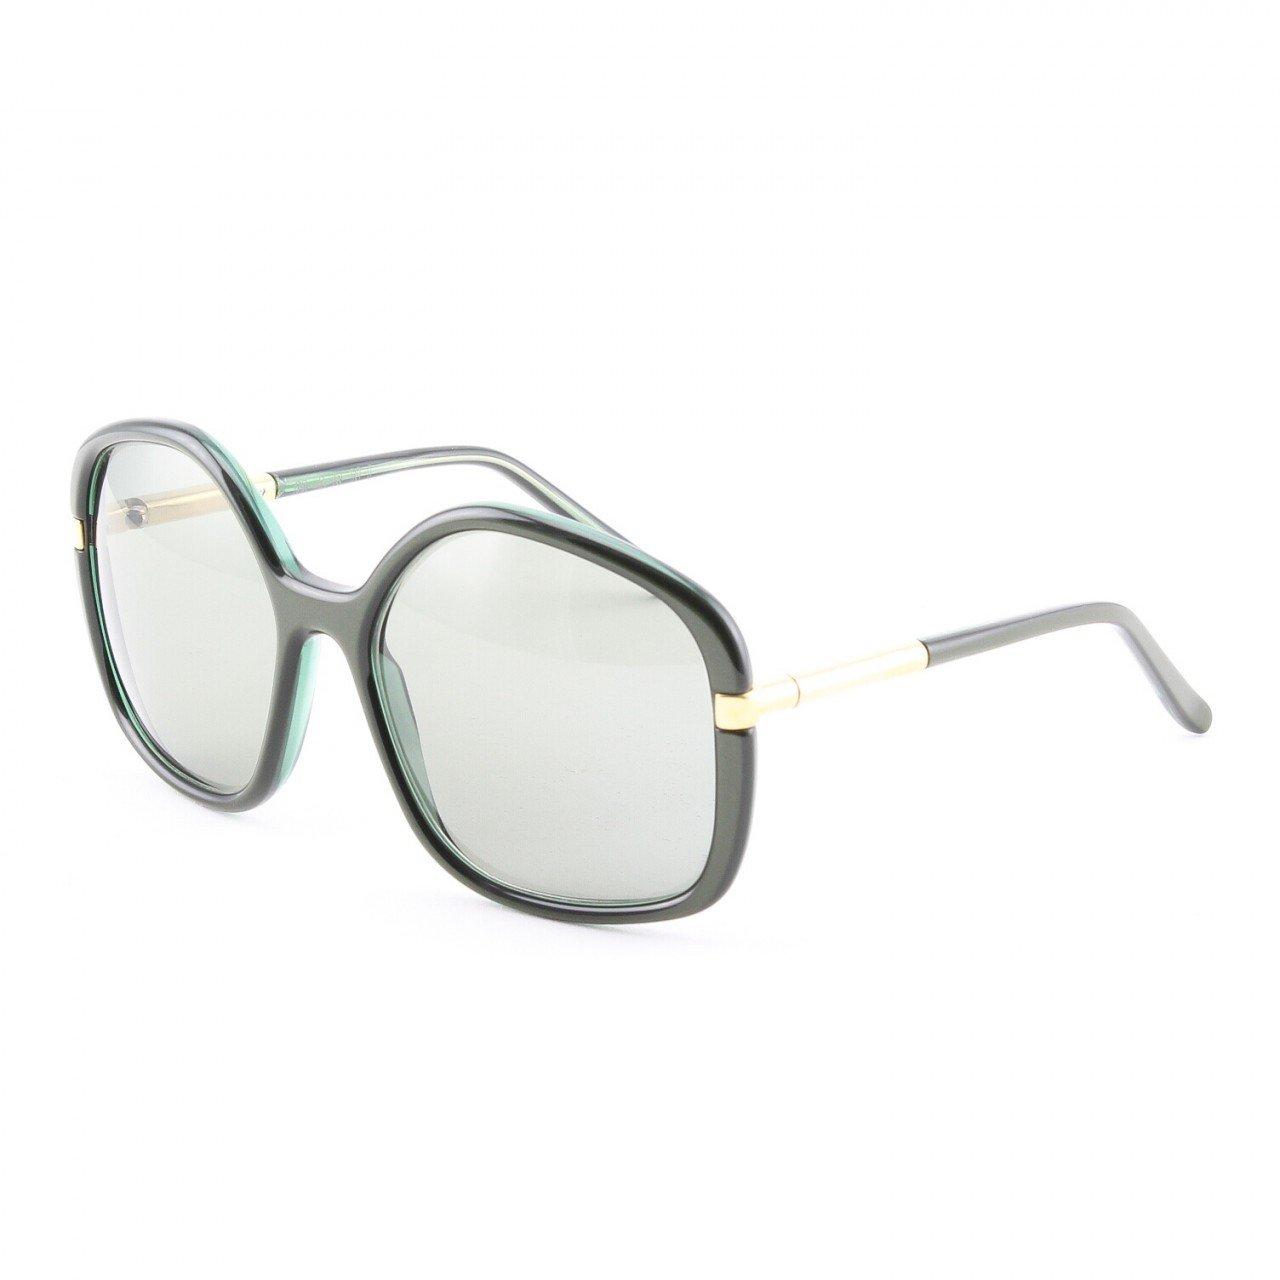 Marni MA211Sunglasses Col. 03 Dark Green Gold Accent with Green Gradient Lenses